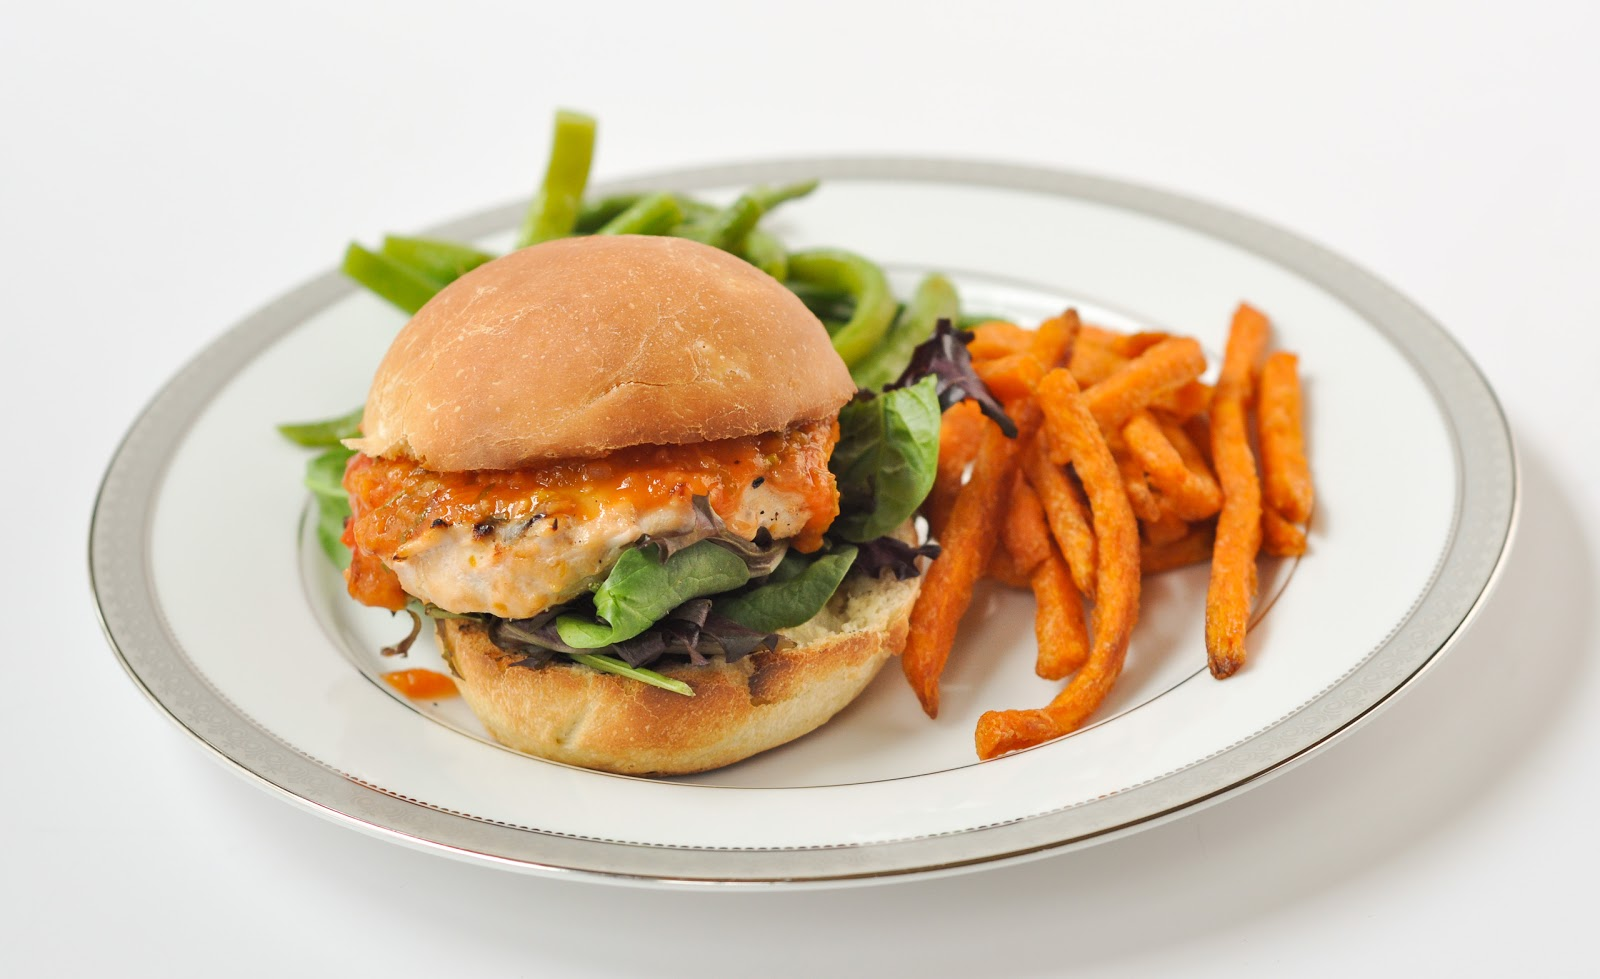 images of chicken burgers - photo #17